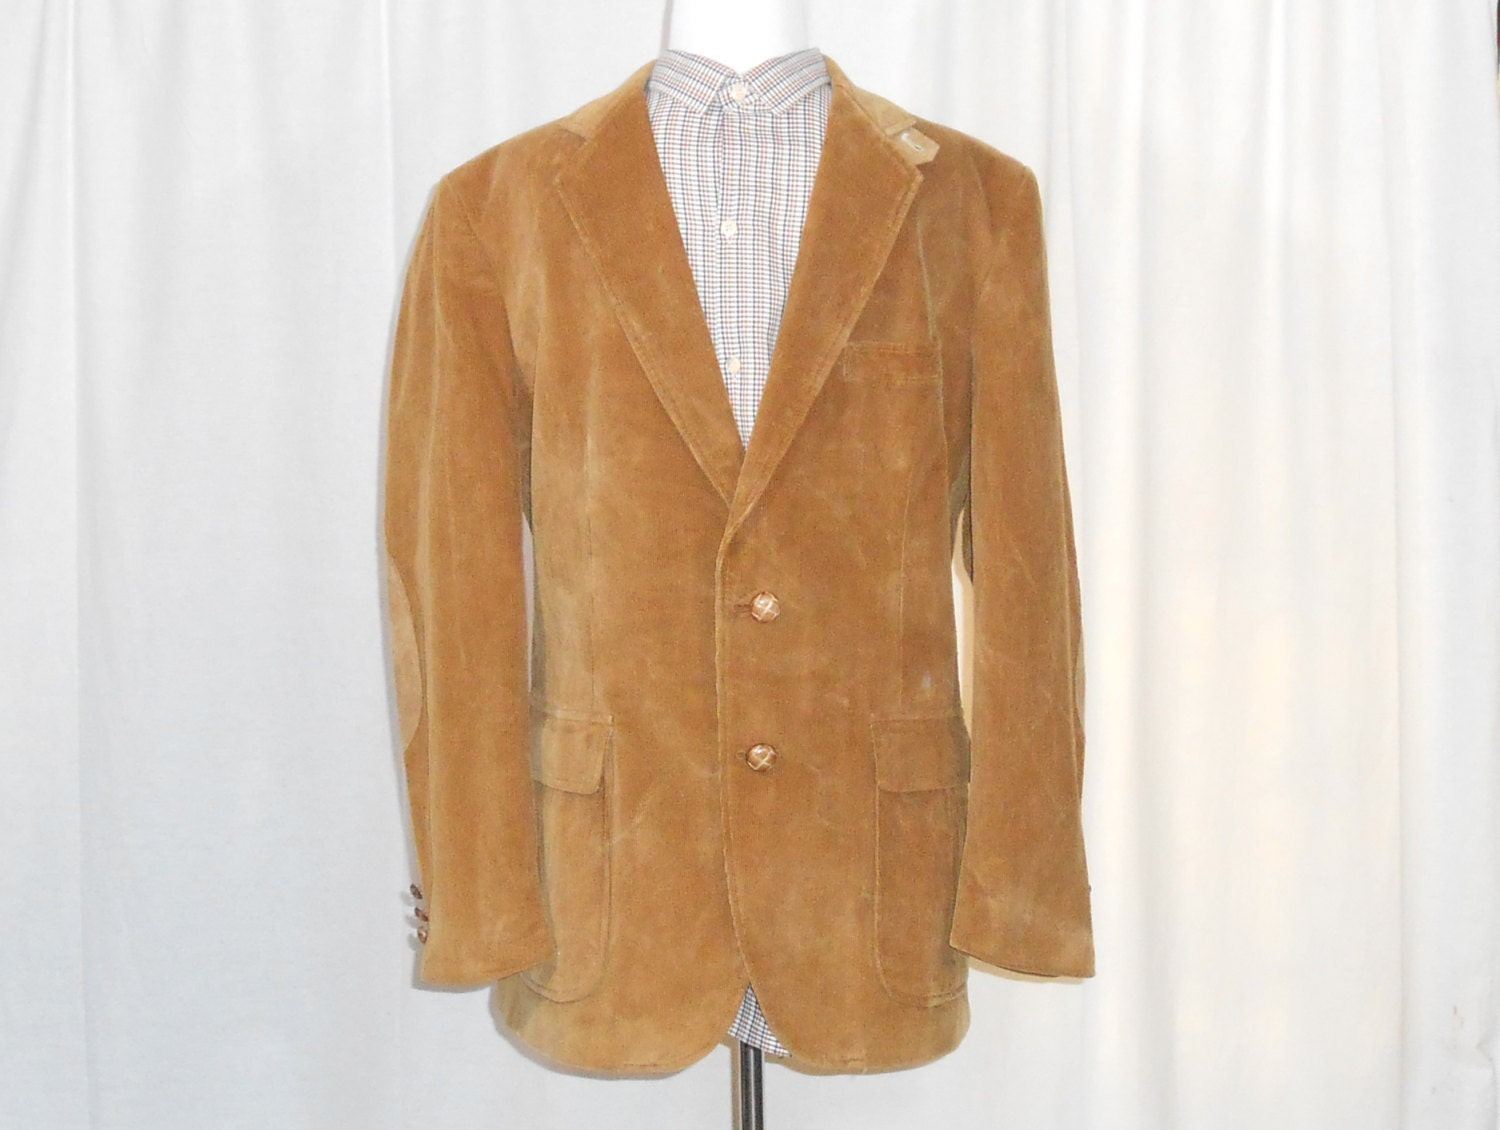 Mens brown blazer with elbow patches